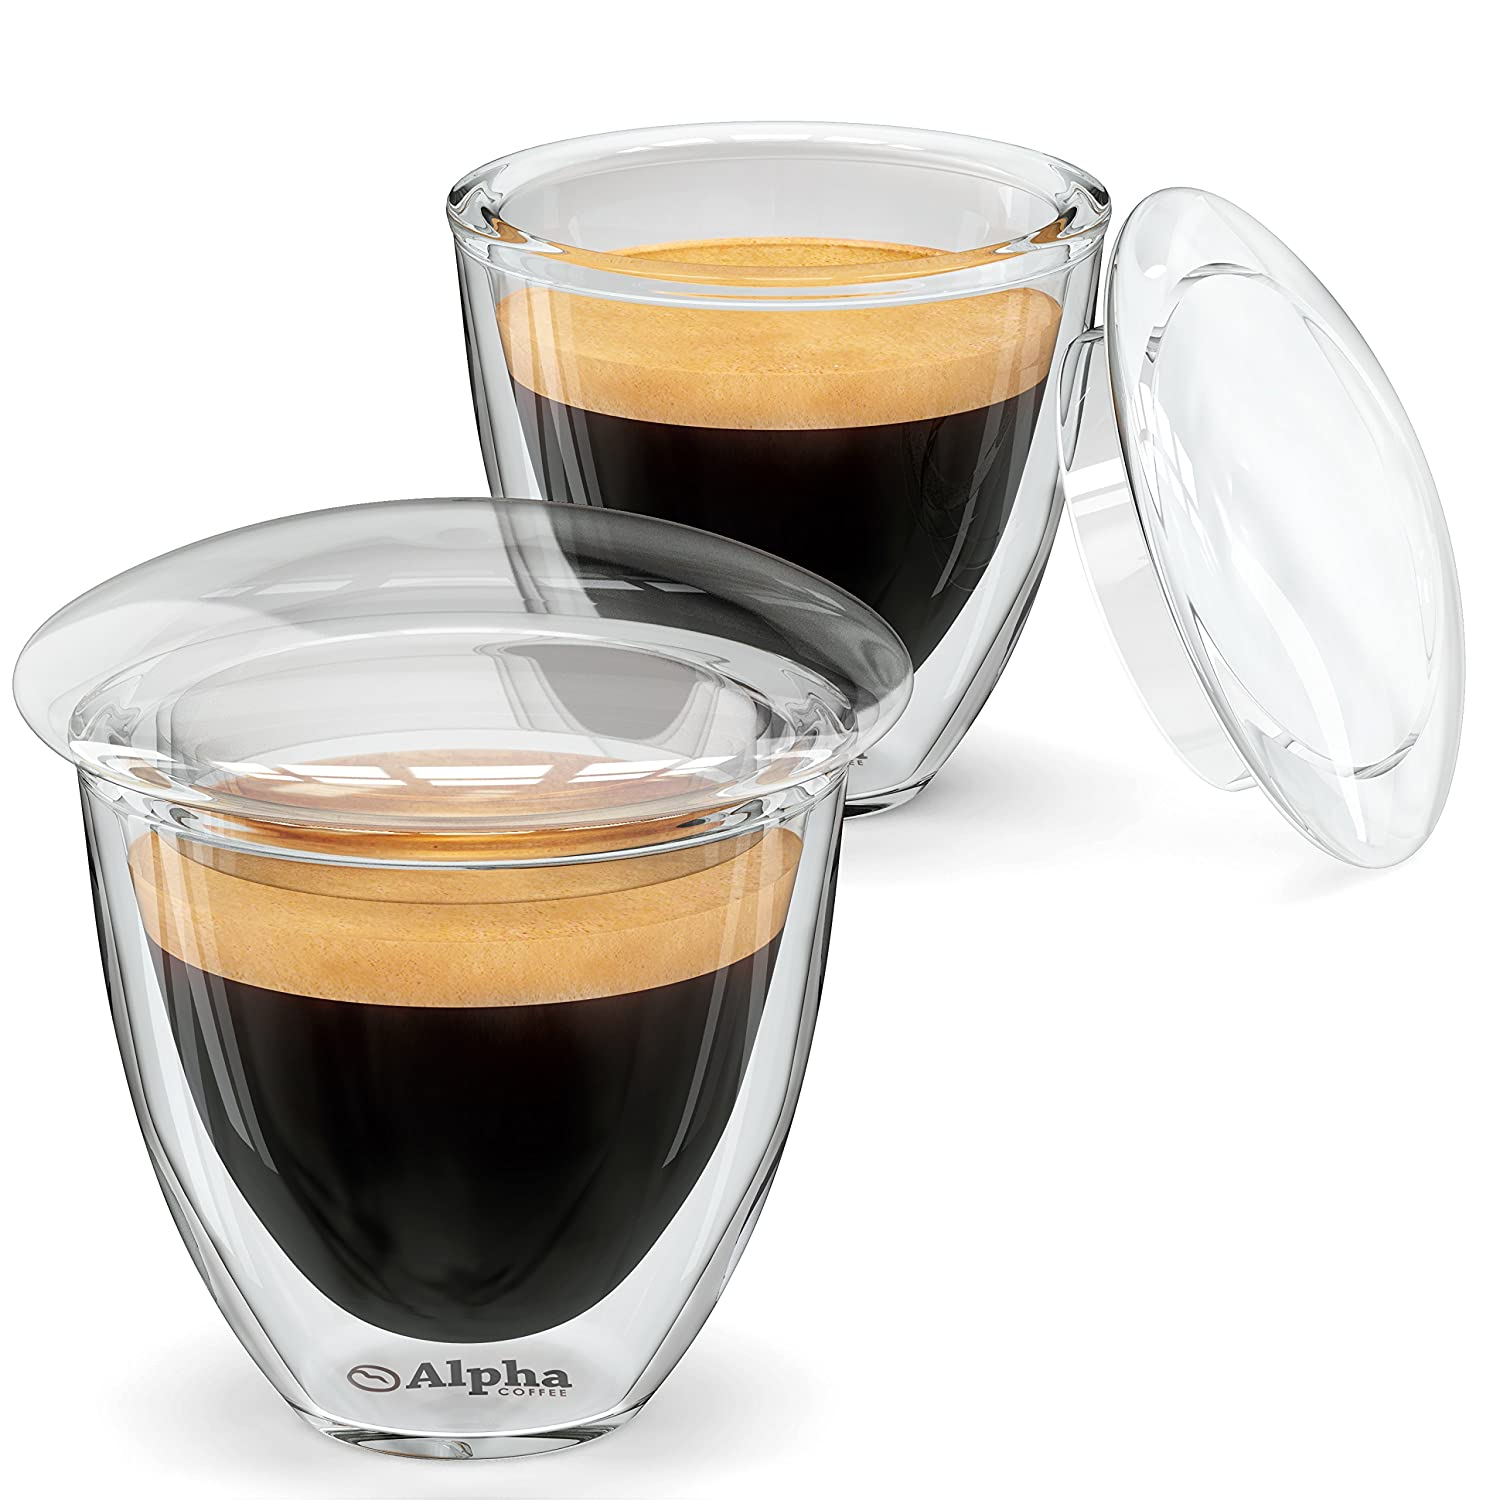 amazoncom  espresso cups with lids  set of   double walled  - amazoncom  espresso cups with lids  set of   double walled demitasseshot glasses to keep your coffee hot by alpha grillers espresso cups